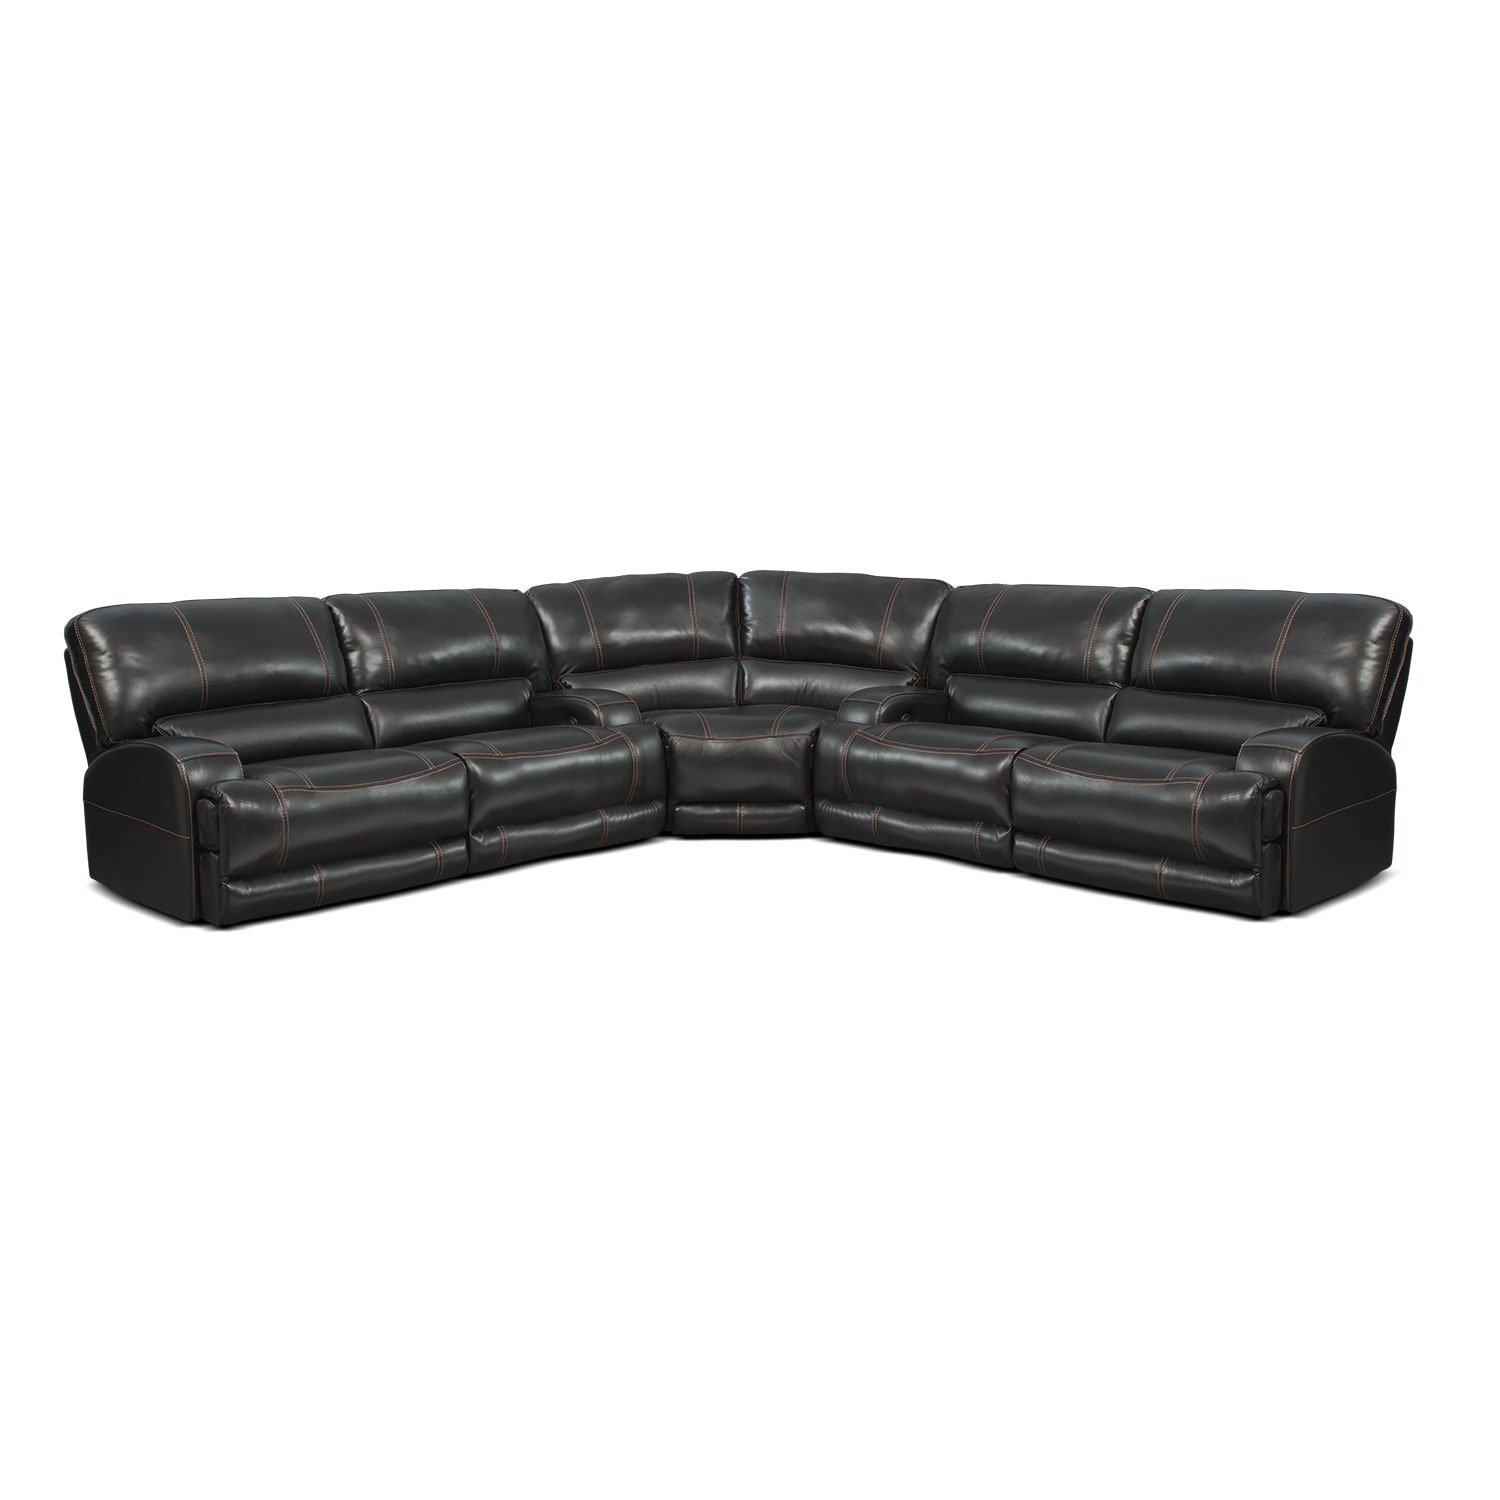 Living Room Furniture - Barton Black 3 Pc. Power Reclining Sectional